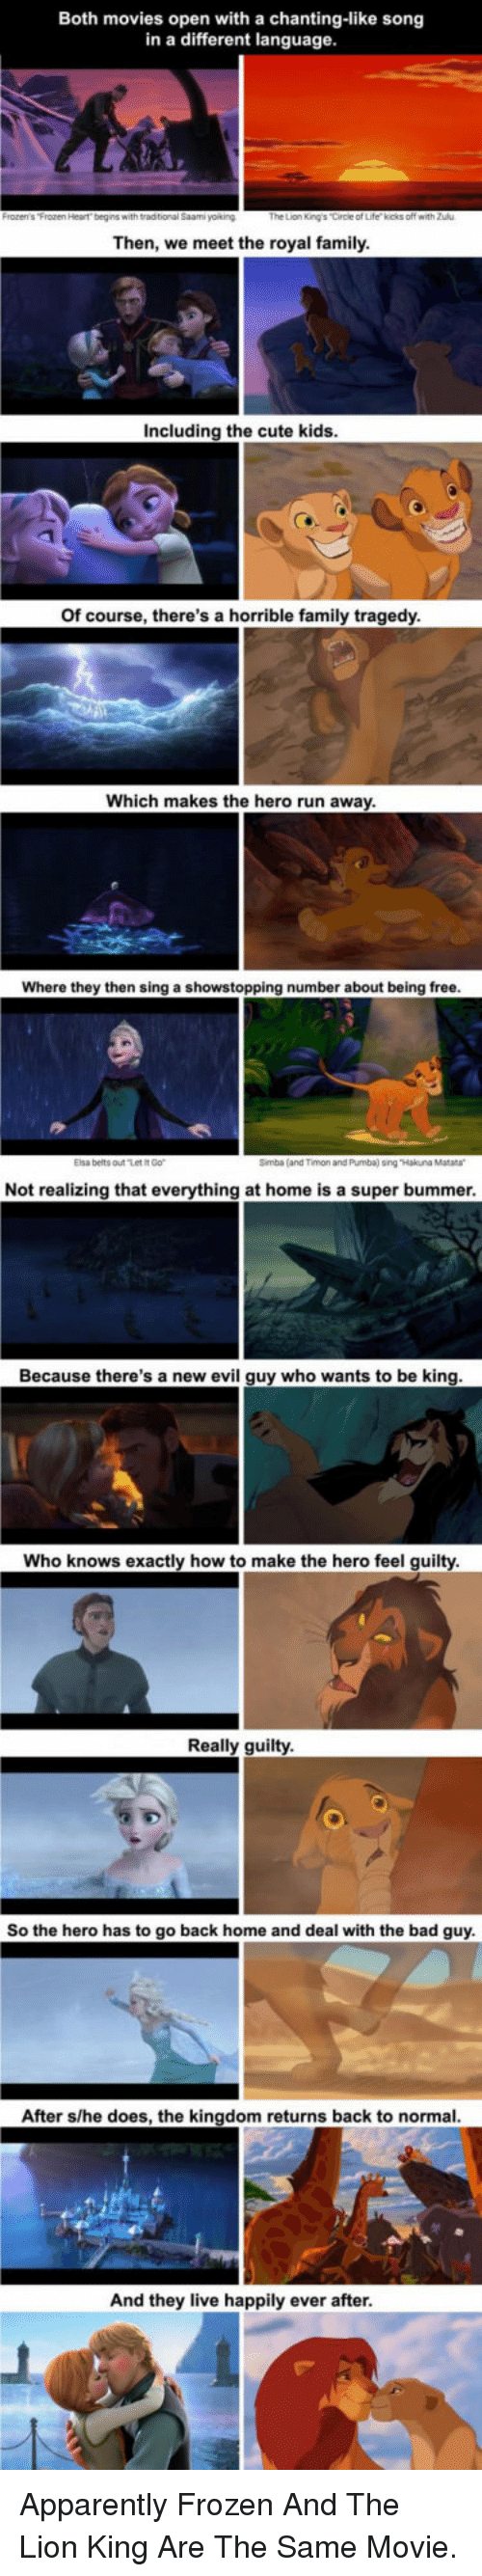 Apparently, Bad, and Cute: Both movies open with a chanting-like song  in a different language  Then, we meet the royal family  Including the cute kids  Of course, there's a horrible family tragedy  Which makes the hero run away  Where they then sing a showstopping number about being free  Elsa belts outt  Simba (and Timon and Pumba) sing Hakuna Matara  Not realizing that everything at home is a super bummer  Because there's a new evil guy who wants to be king  Who knows exactly how to make the hero feel guilty  Really guilty  So the hero has to go back home and deal with the bad guy  After s/he does, the kingdom returns back to normal  And they live happily ever after <p>Apparently Frozen And The Lion King Are The Same Movie.</p>